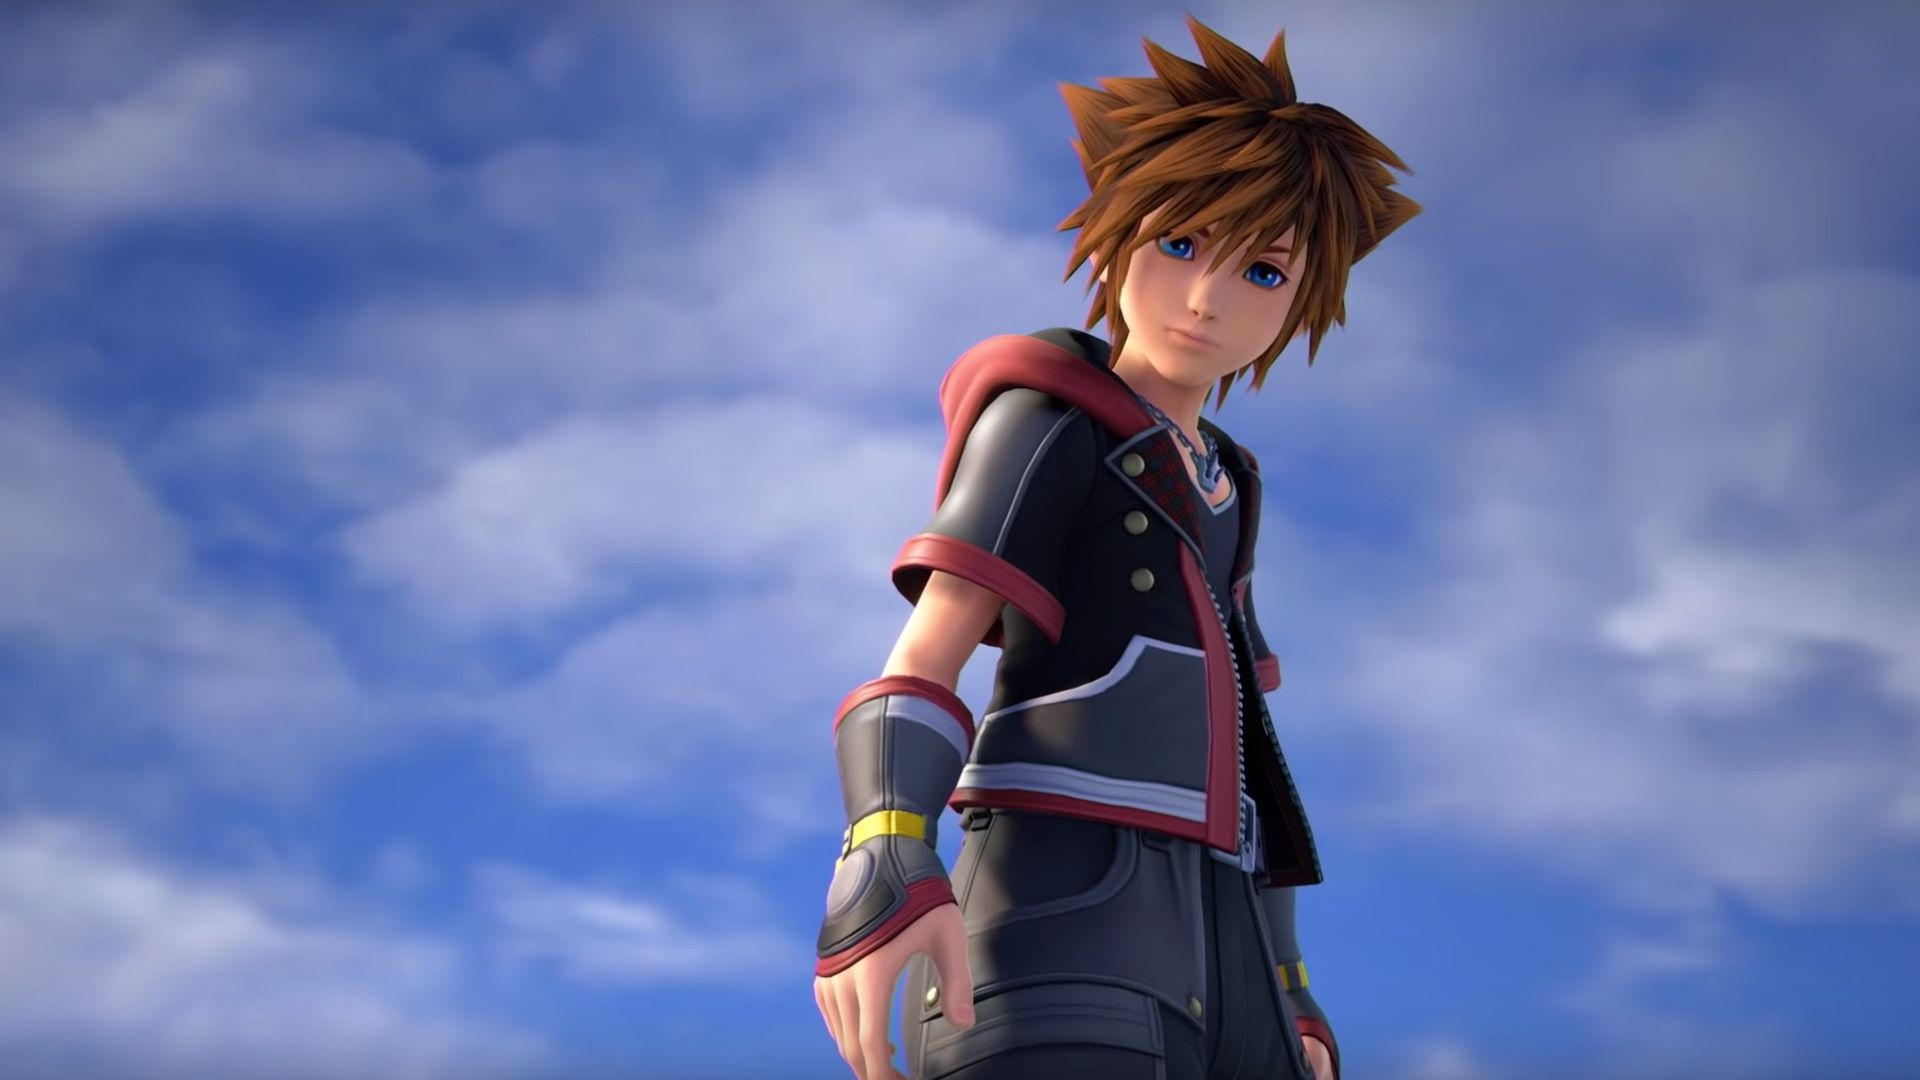 The Final Battle Trailer For Kingdom Hearts Iii Has Arrived And